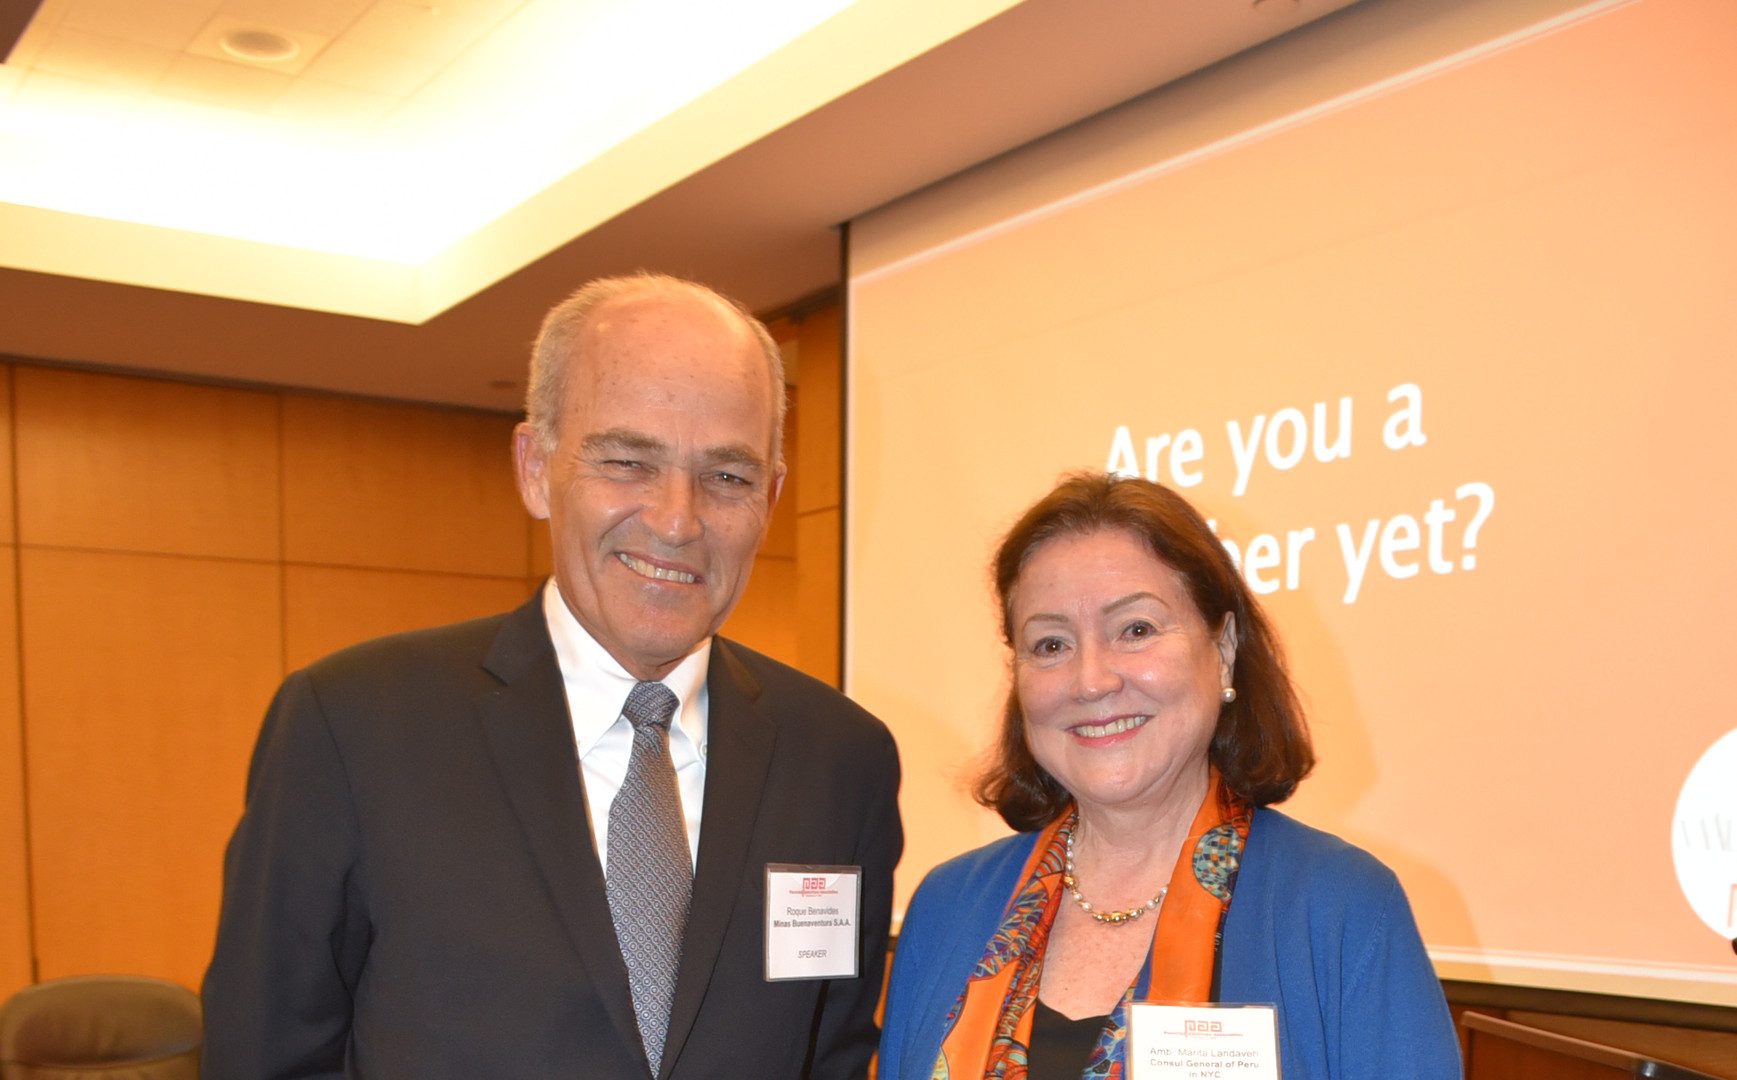 Roque Benavides and Amb. Marita Landaveri